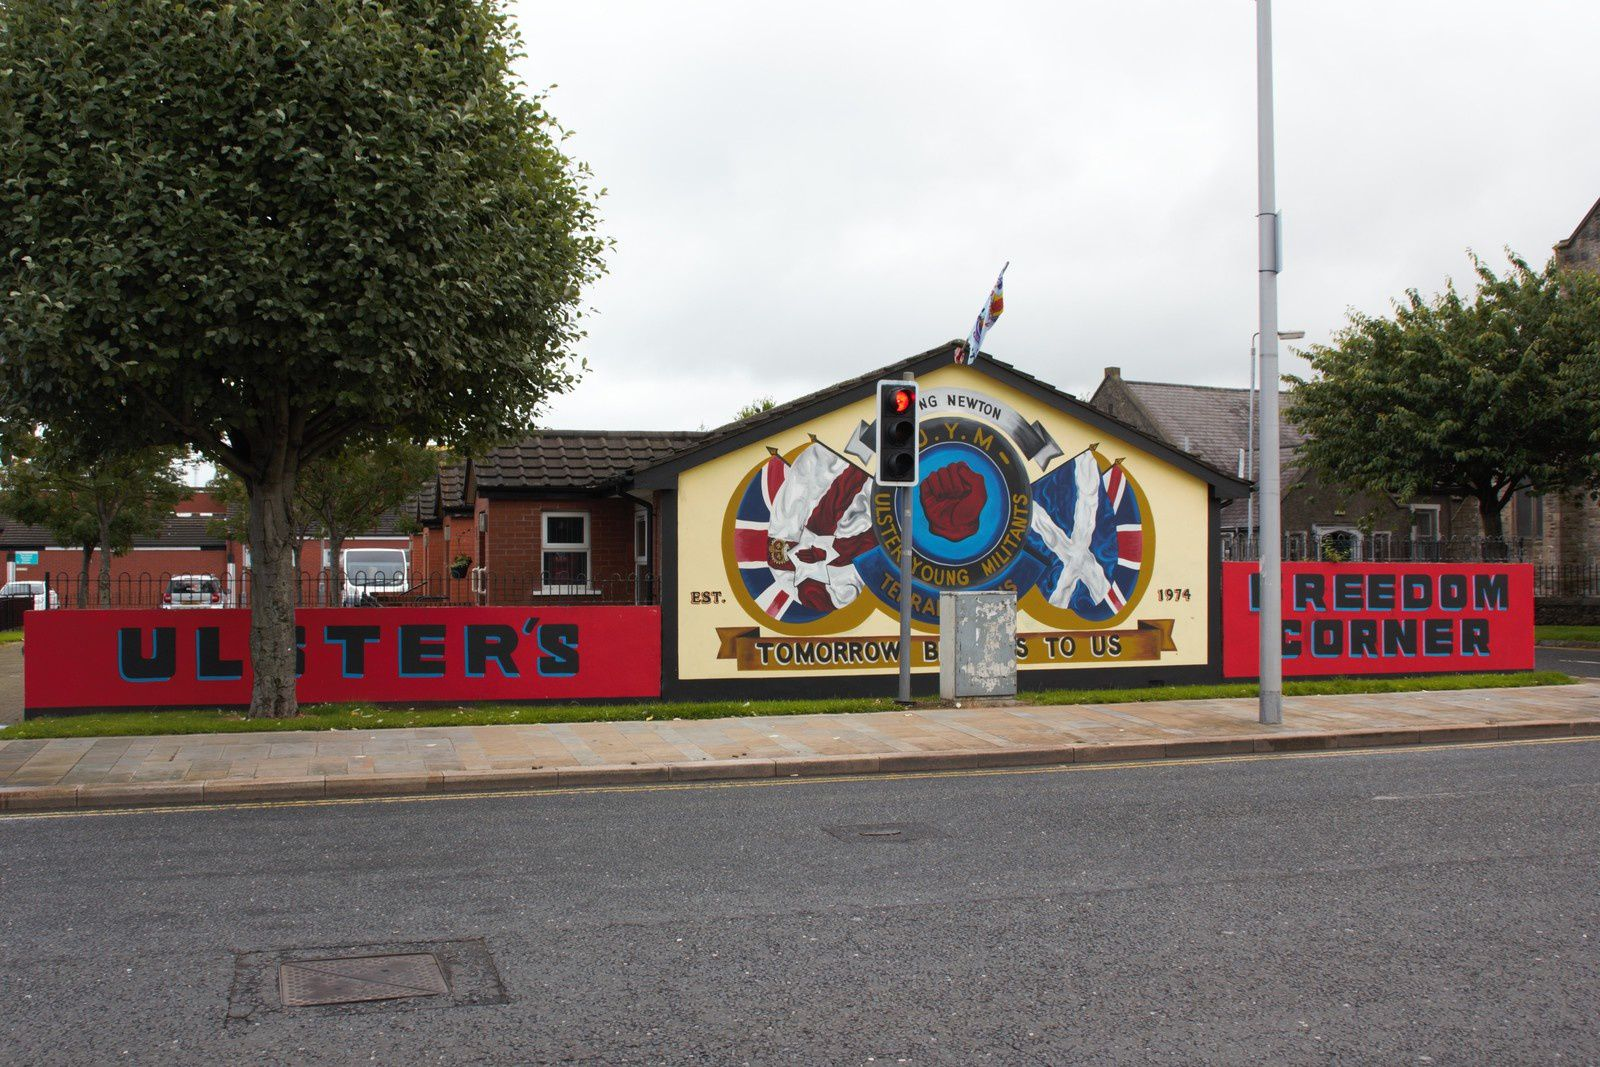 647) Newtownards Road, East Belfast